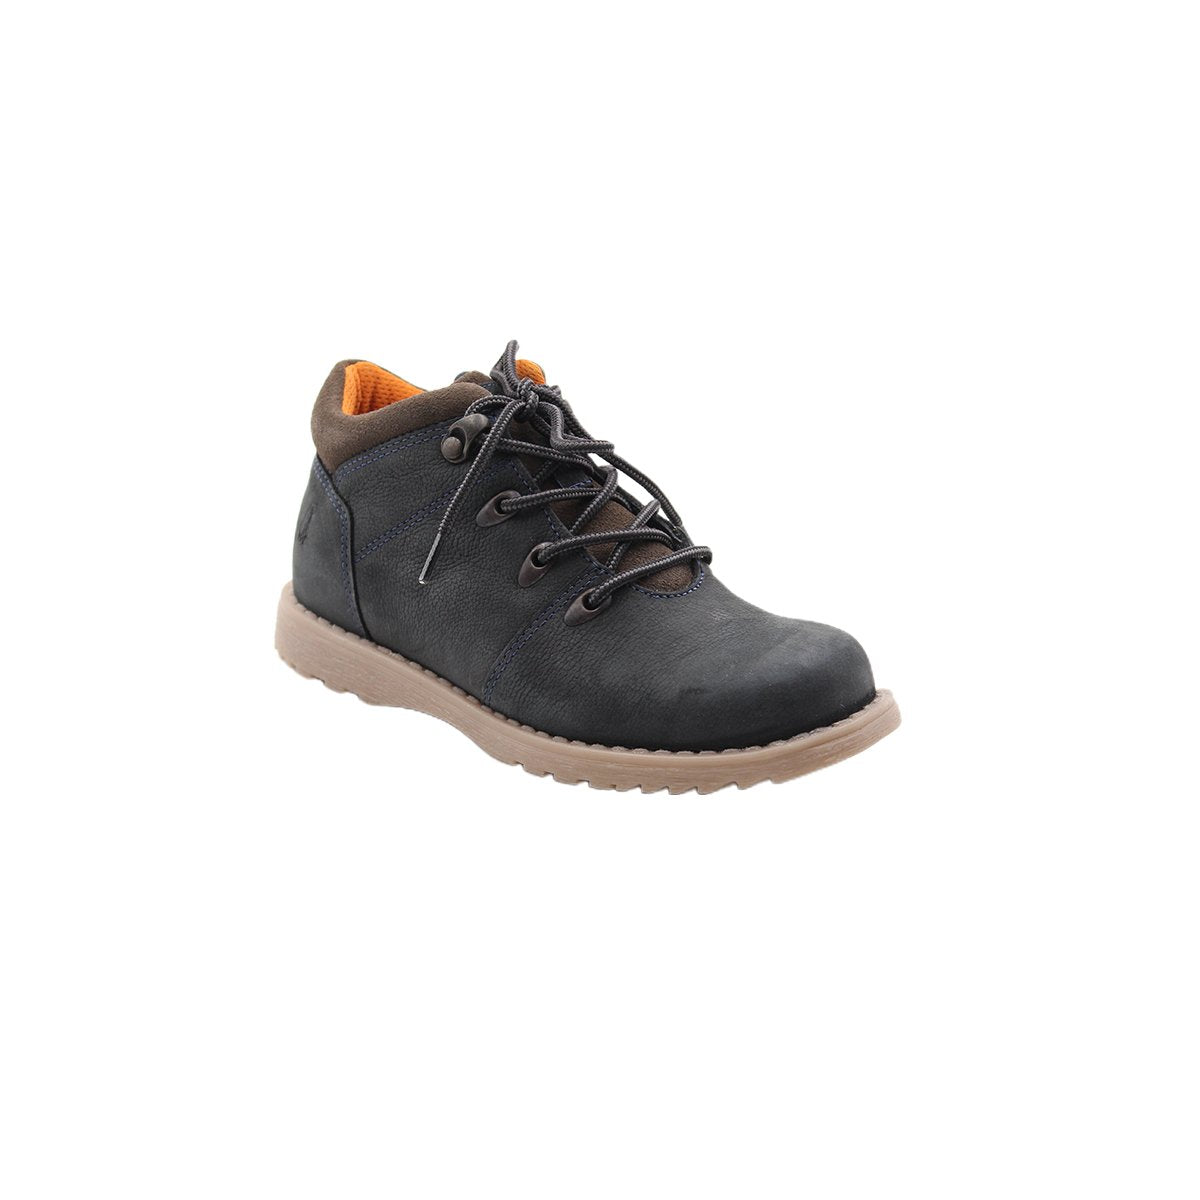 bota andy 2.0 - color navy, 49.99, all day comfort, azul, calzado, cuero, temporada 5, hush puppies, navy, ninos, niã'o, precio regular, comprar, en linea, online, delivery, el salvador, zapatos, hush puppies